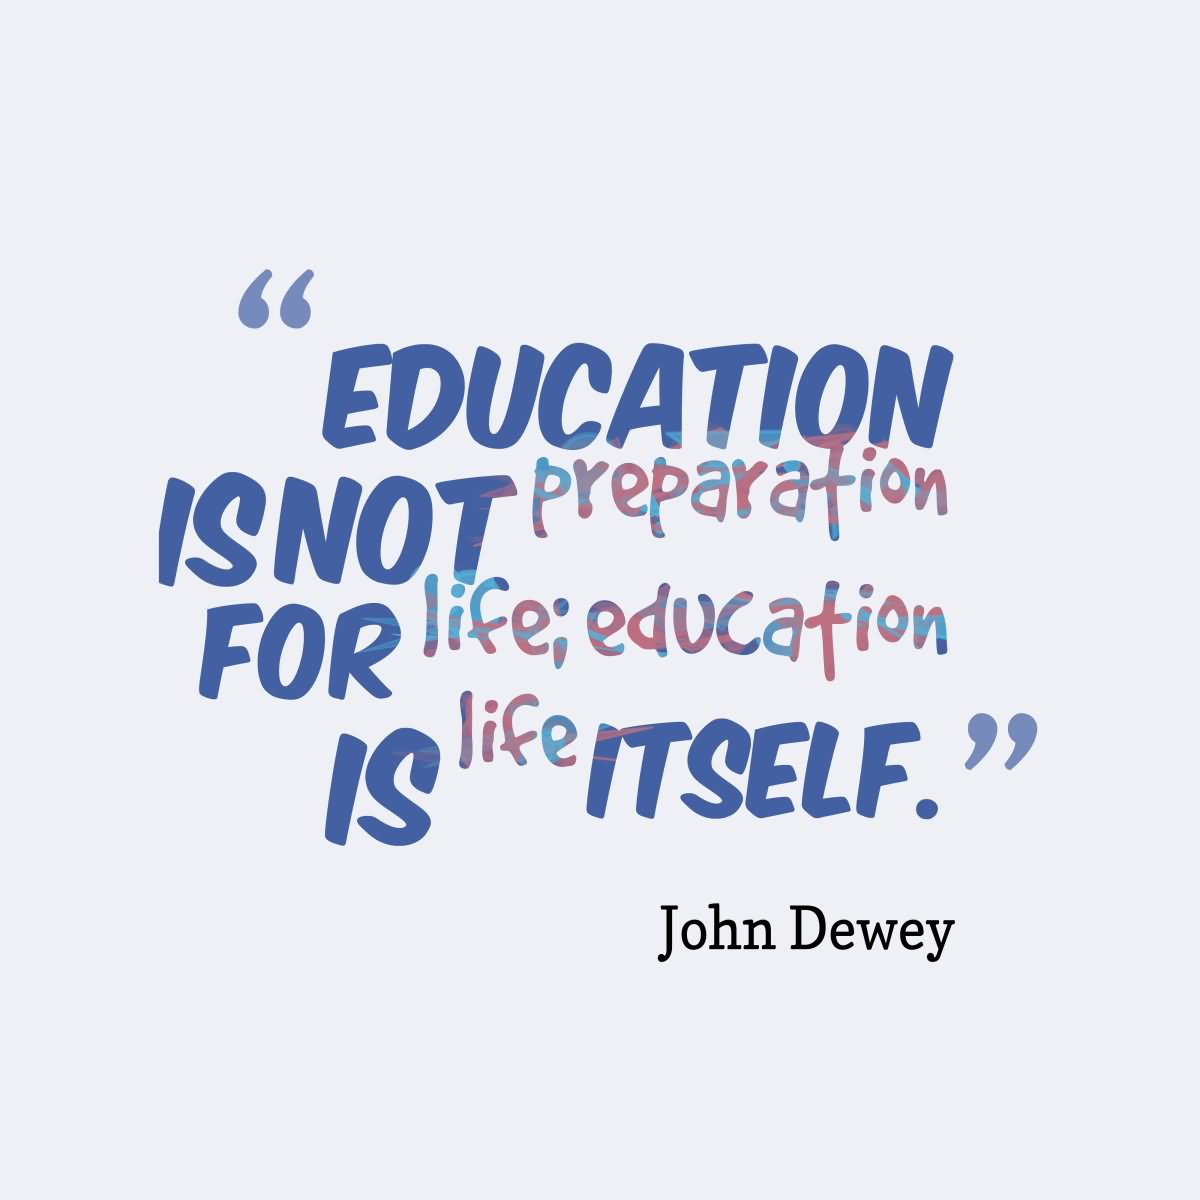 Life Education Quotes Education Is Not Preparation For Life Education Is Life Itself.